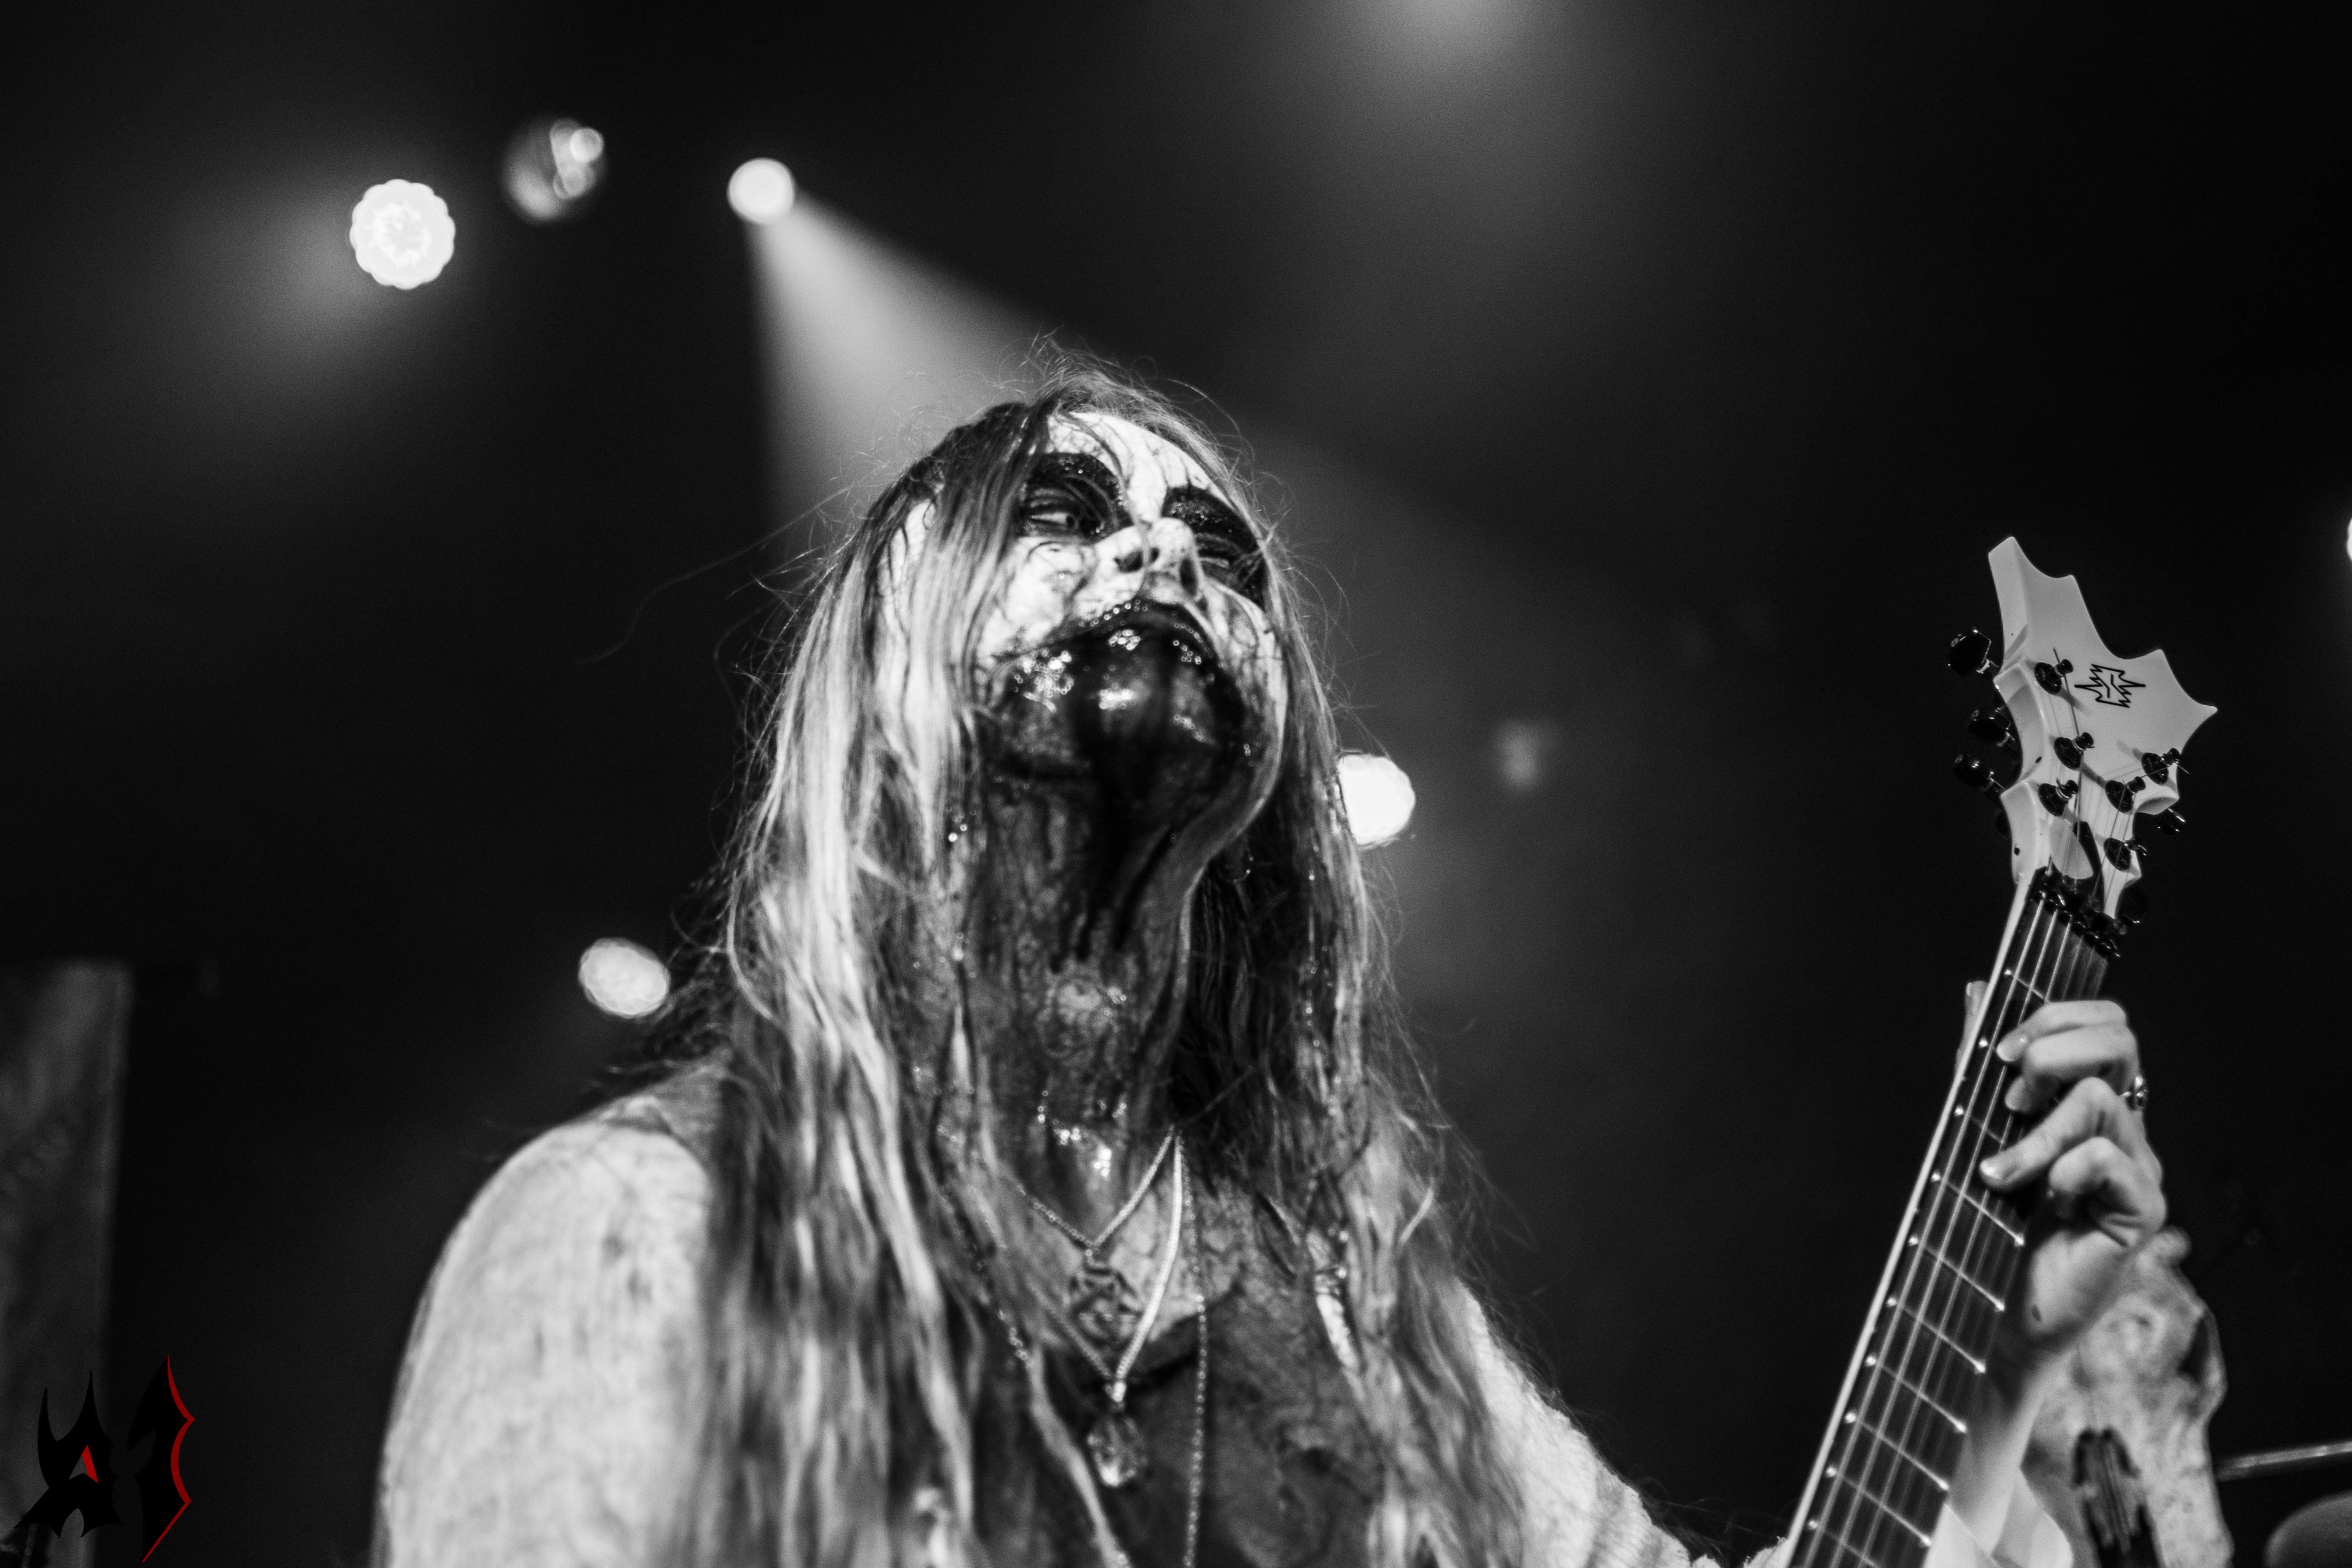 Darkened Nocturn Slaughtercult - 28